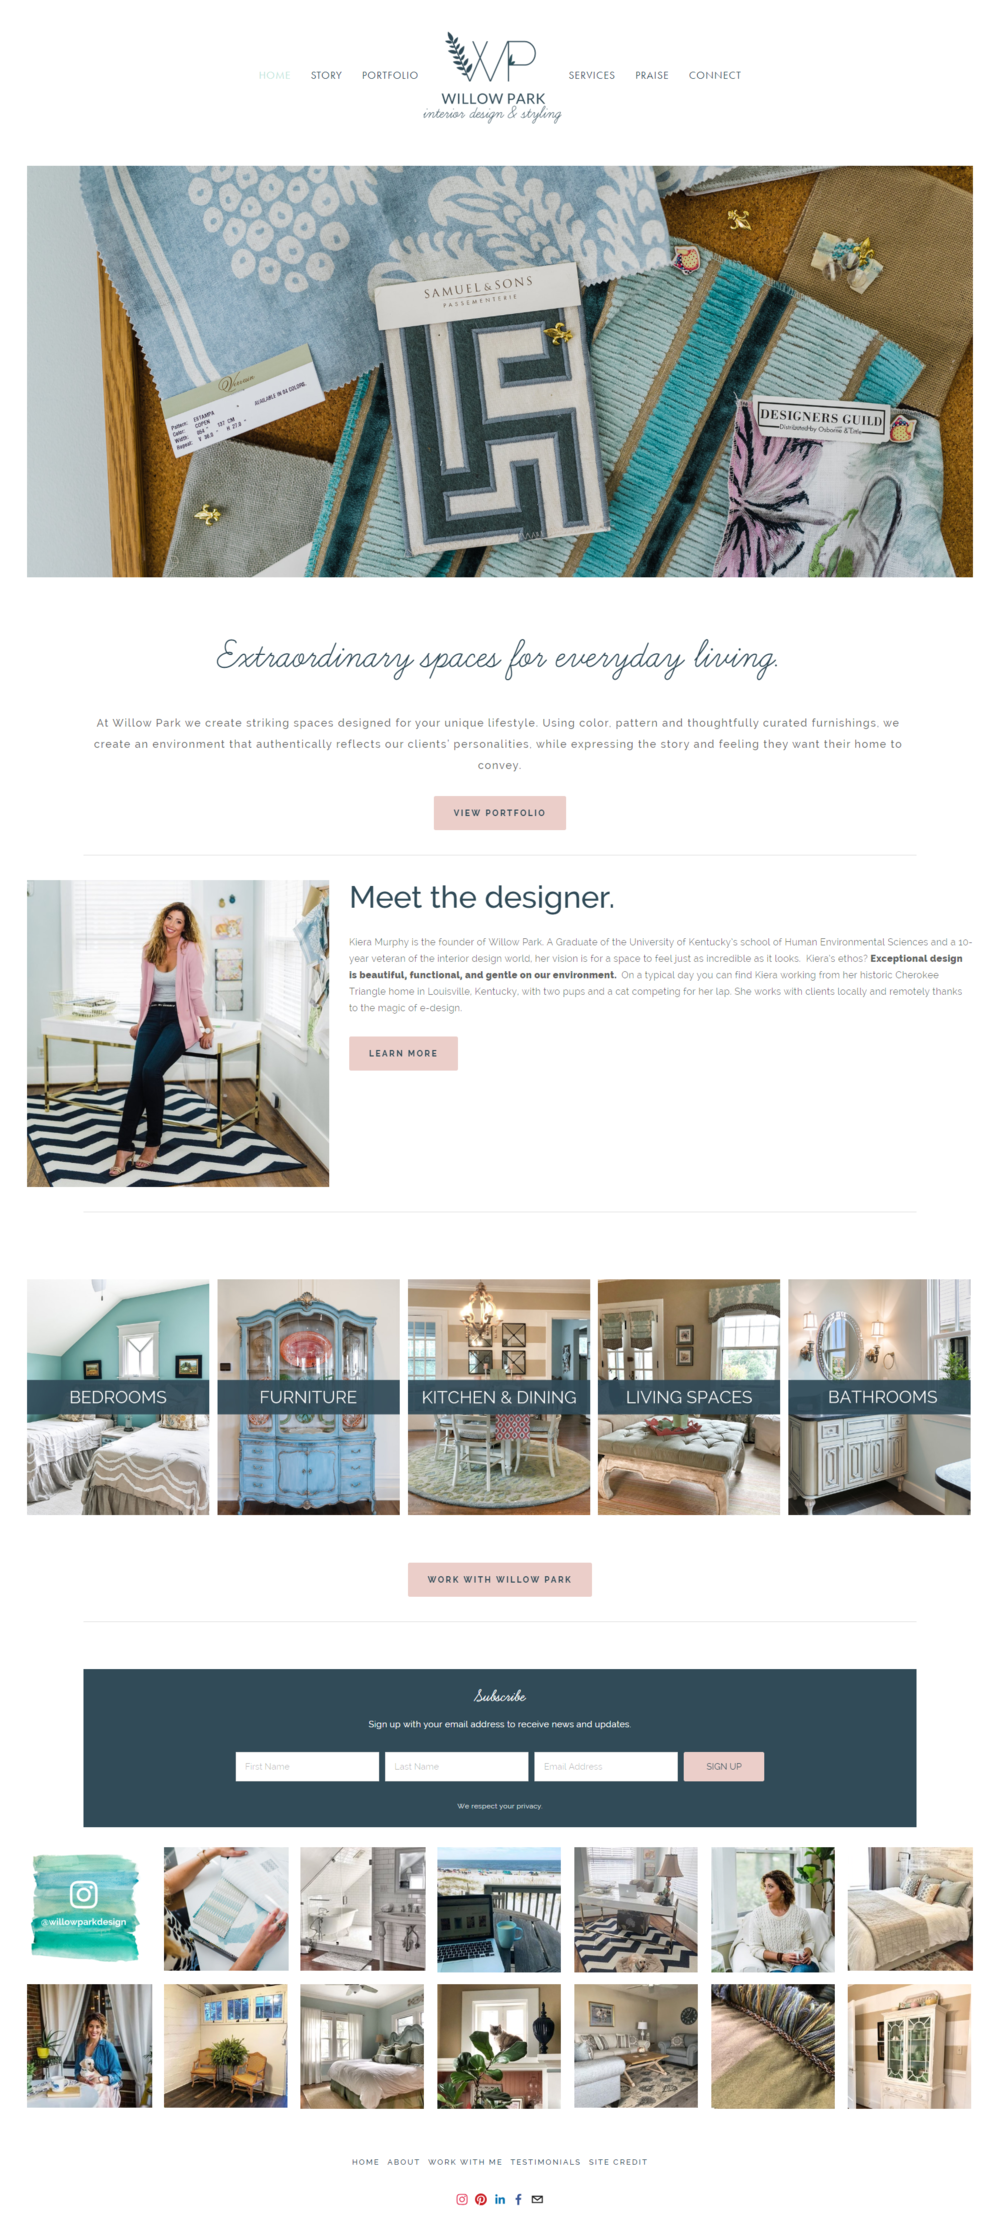 screencapture-willowparkdesign-2019-04-09-23_13_39.png